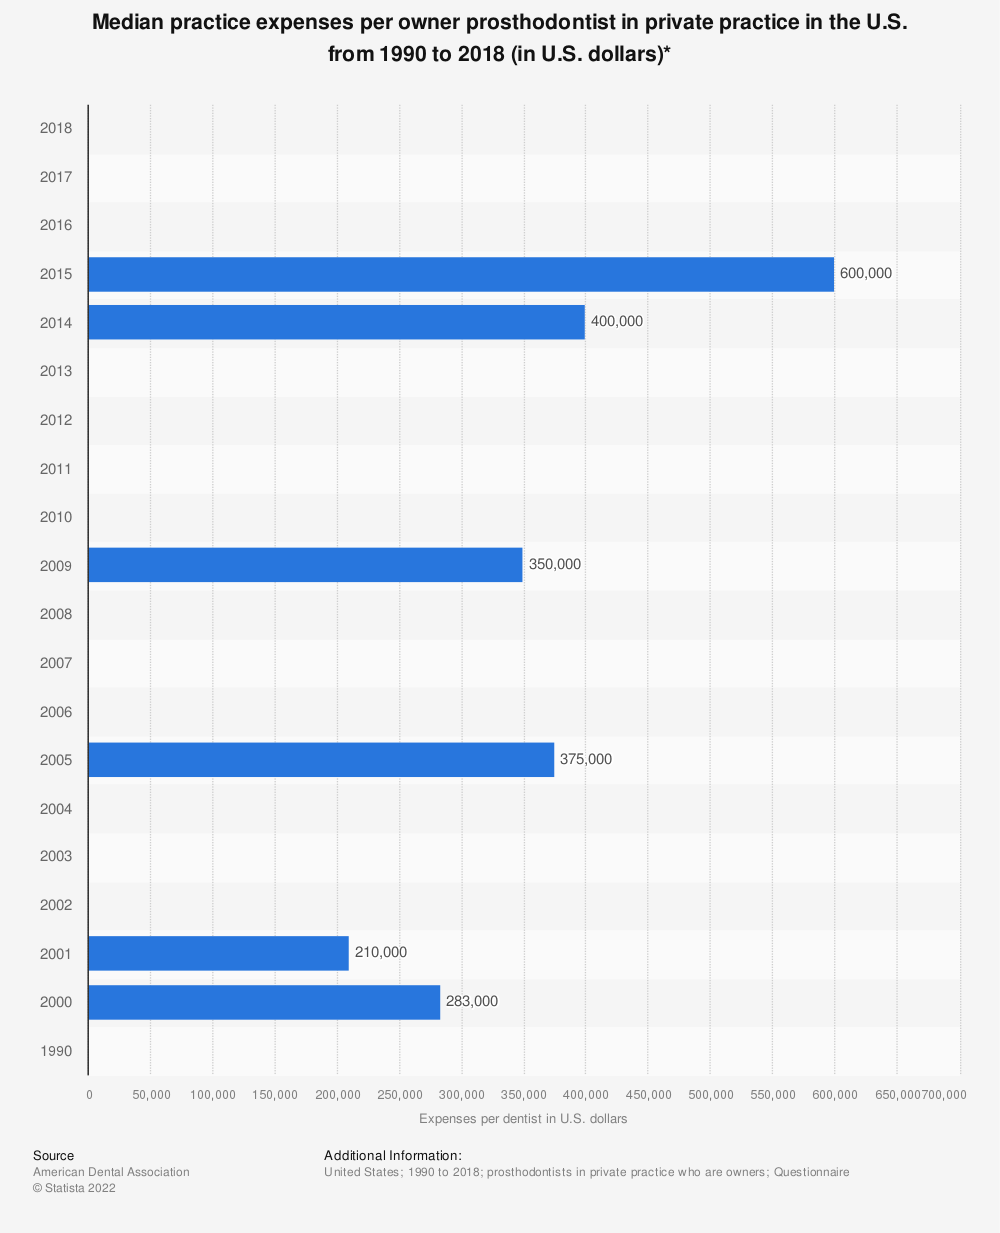 Statistic: Median practice expenses per owner prosthodontist in private practice in the U.S. from 1990 to 2018 (in U.S. dollars)* | Statista